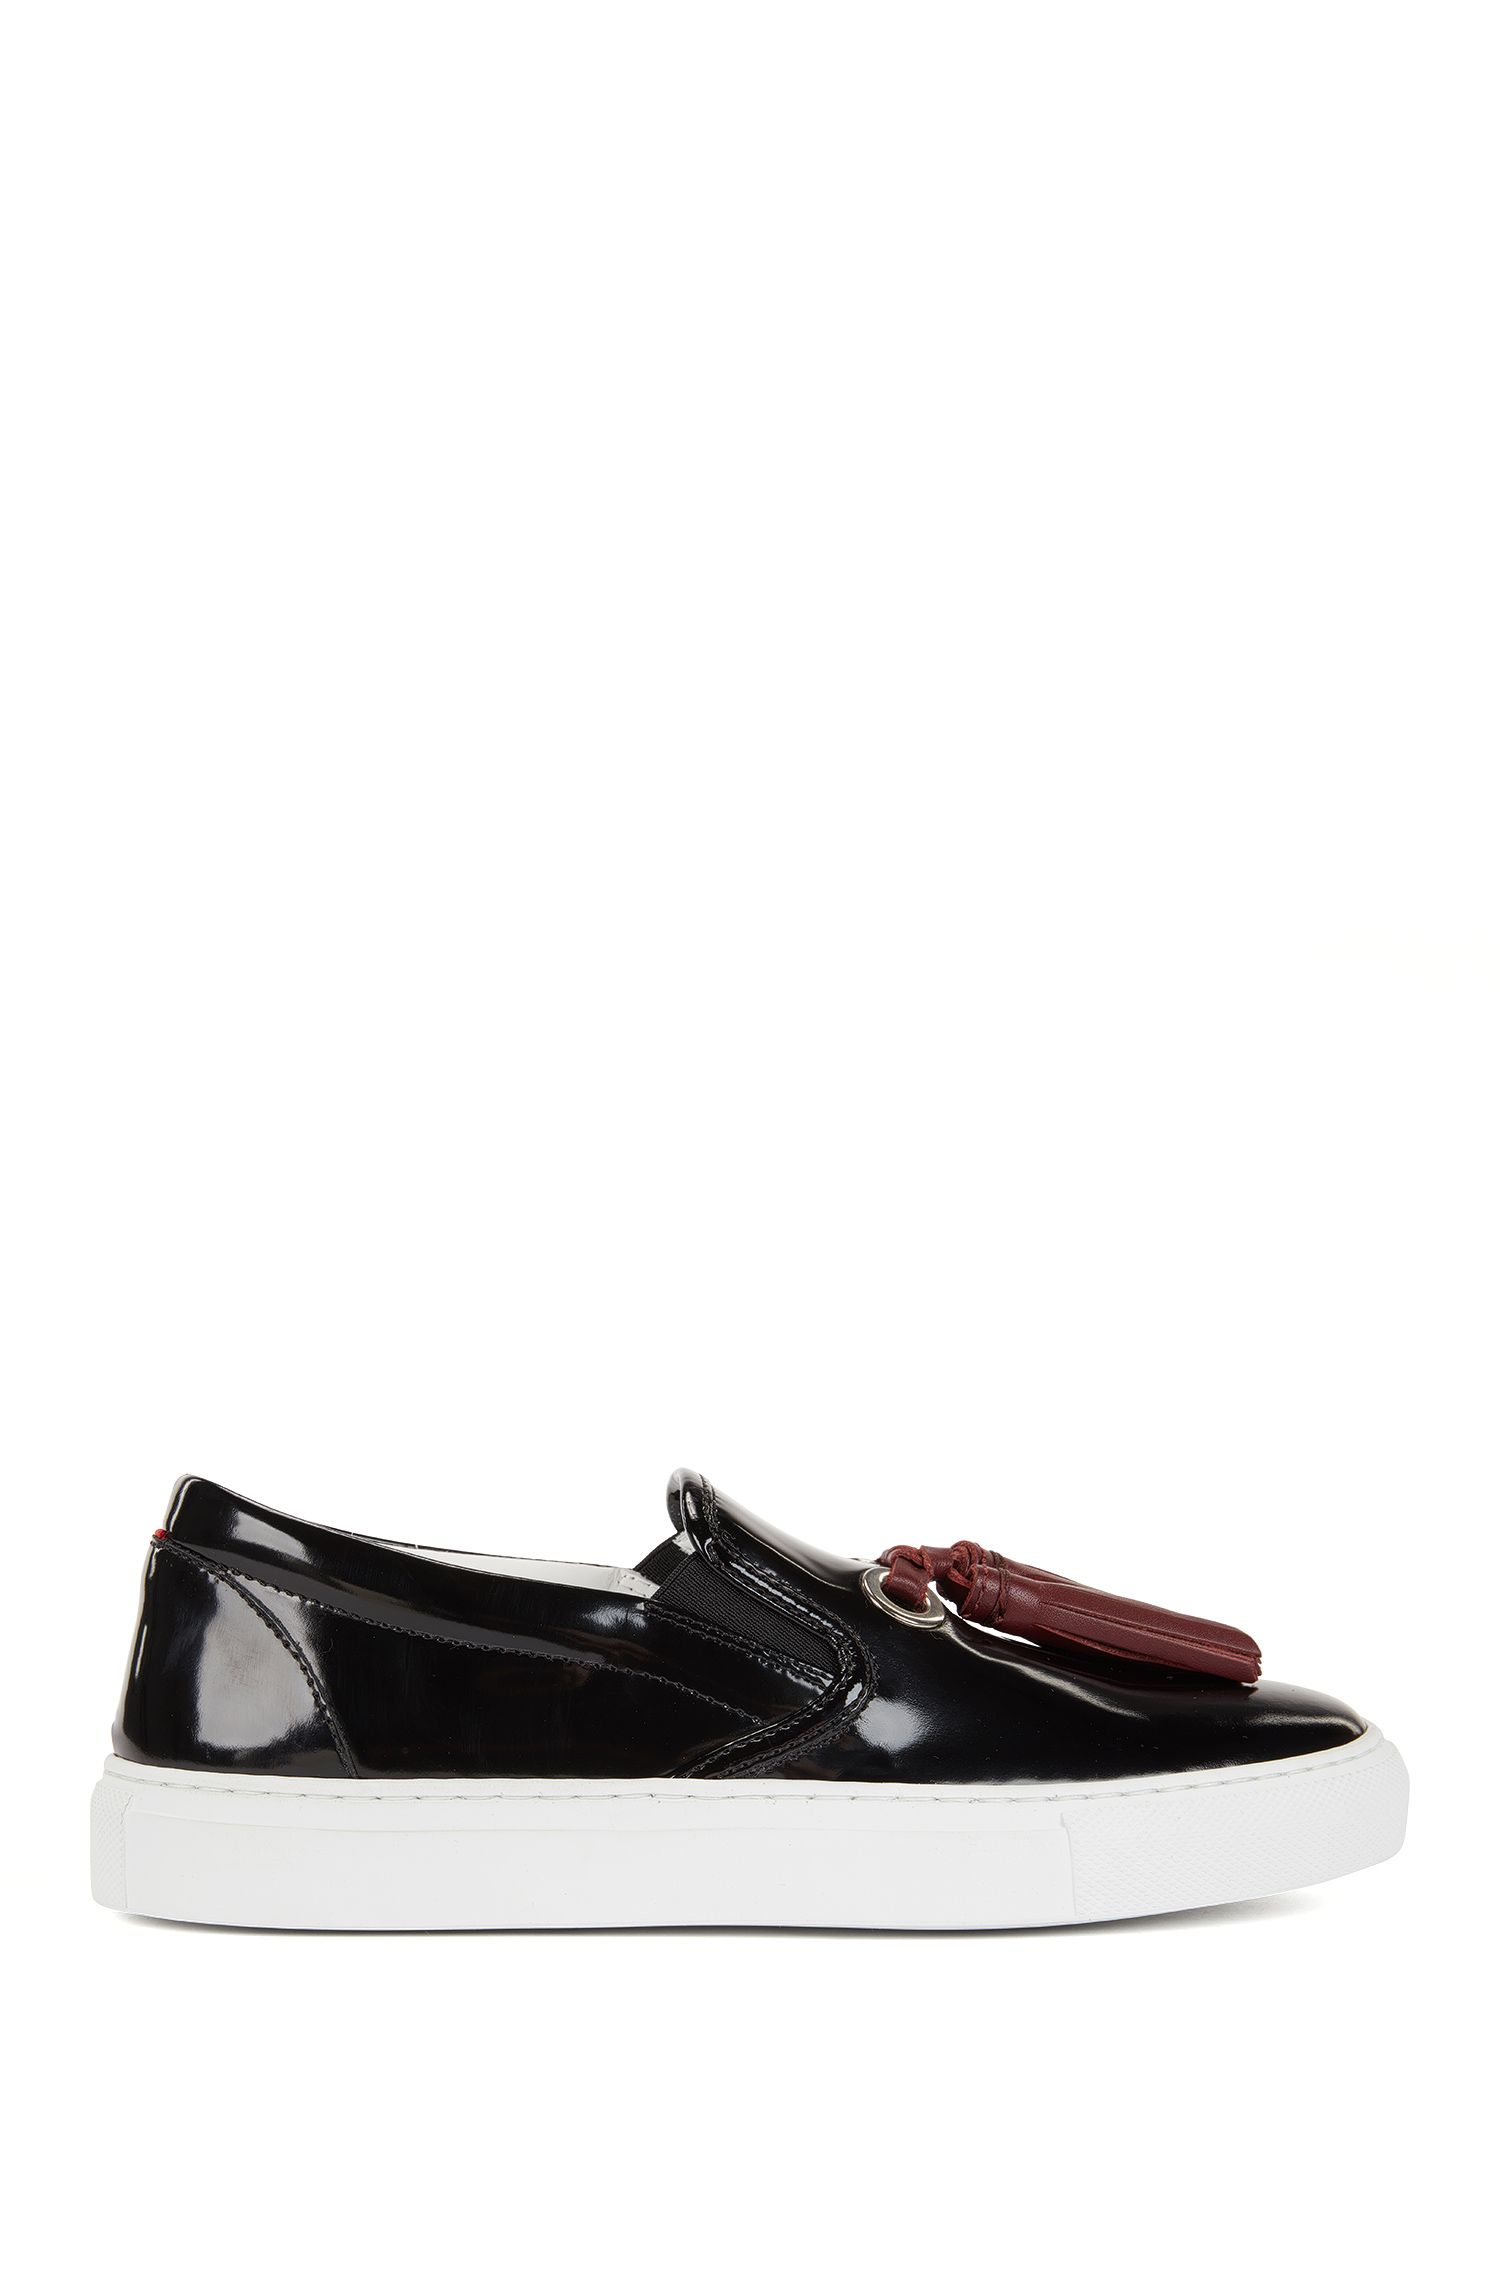 Tasselled loafers in Italian leather